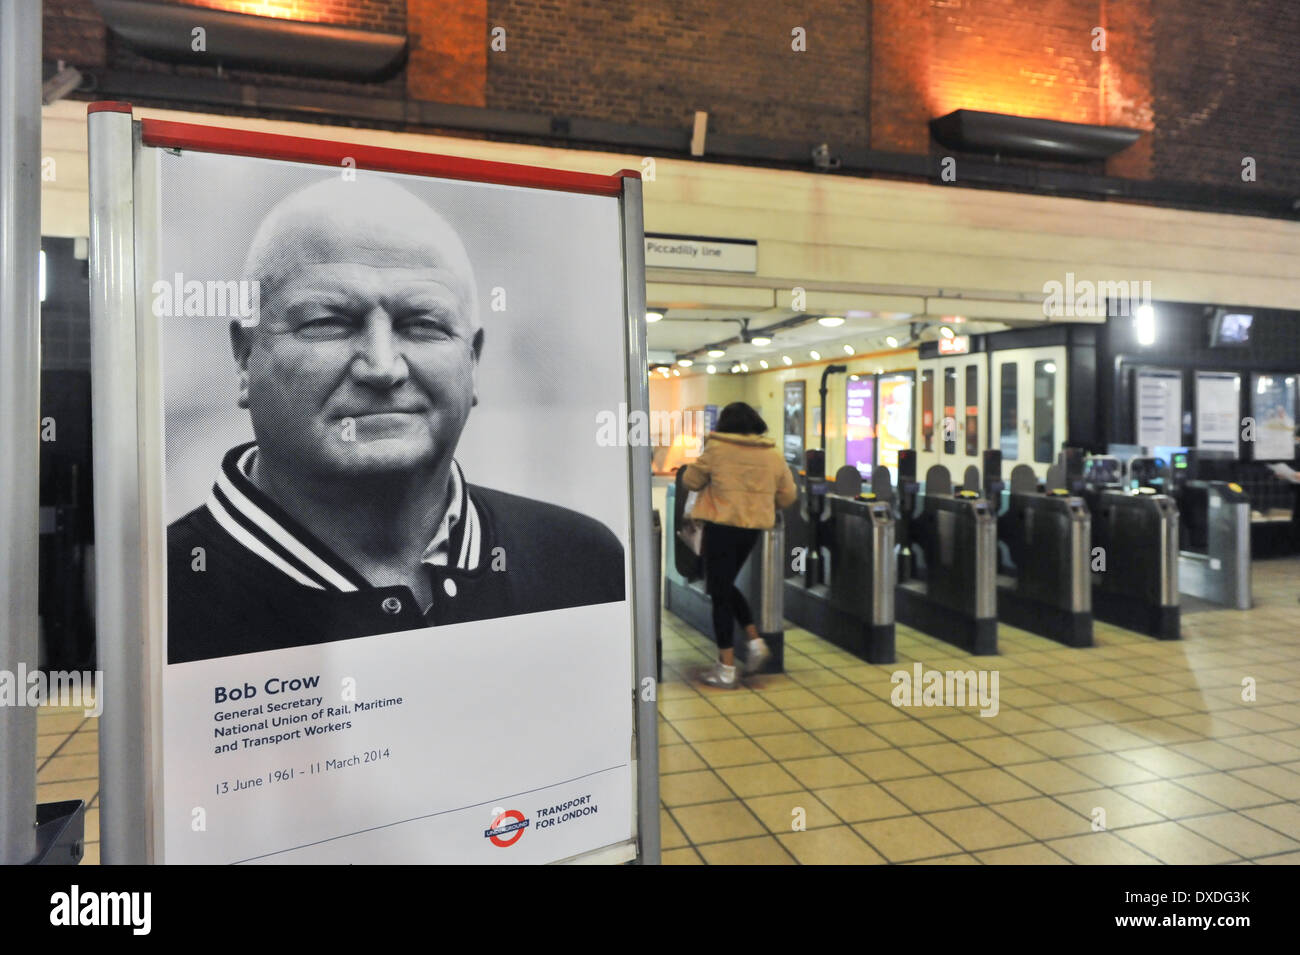 Turnpike Lane Station, London, UK. 24th March 2014.  A poster of the late Bob Crow, the General Secretary of the RMT Union in front of the gates in TurnpikeLane station on the day of his funeral. Credit:  Matthew Chattle/Alamy Live News - Stock Image